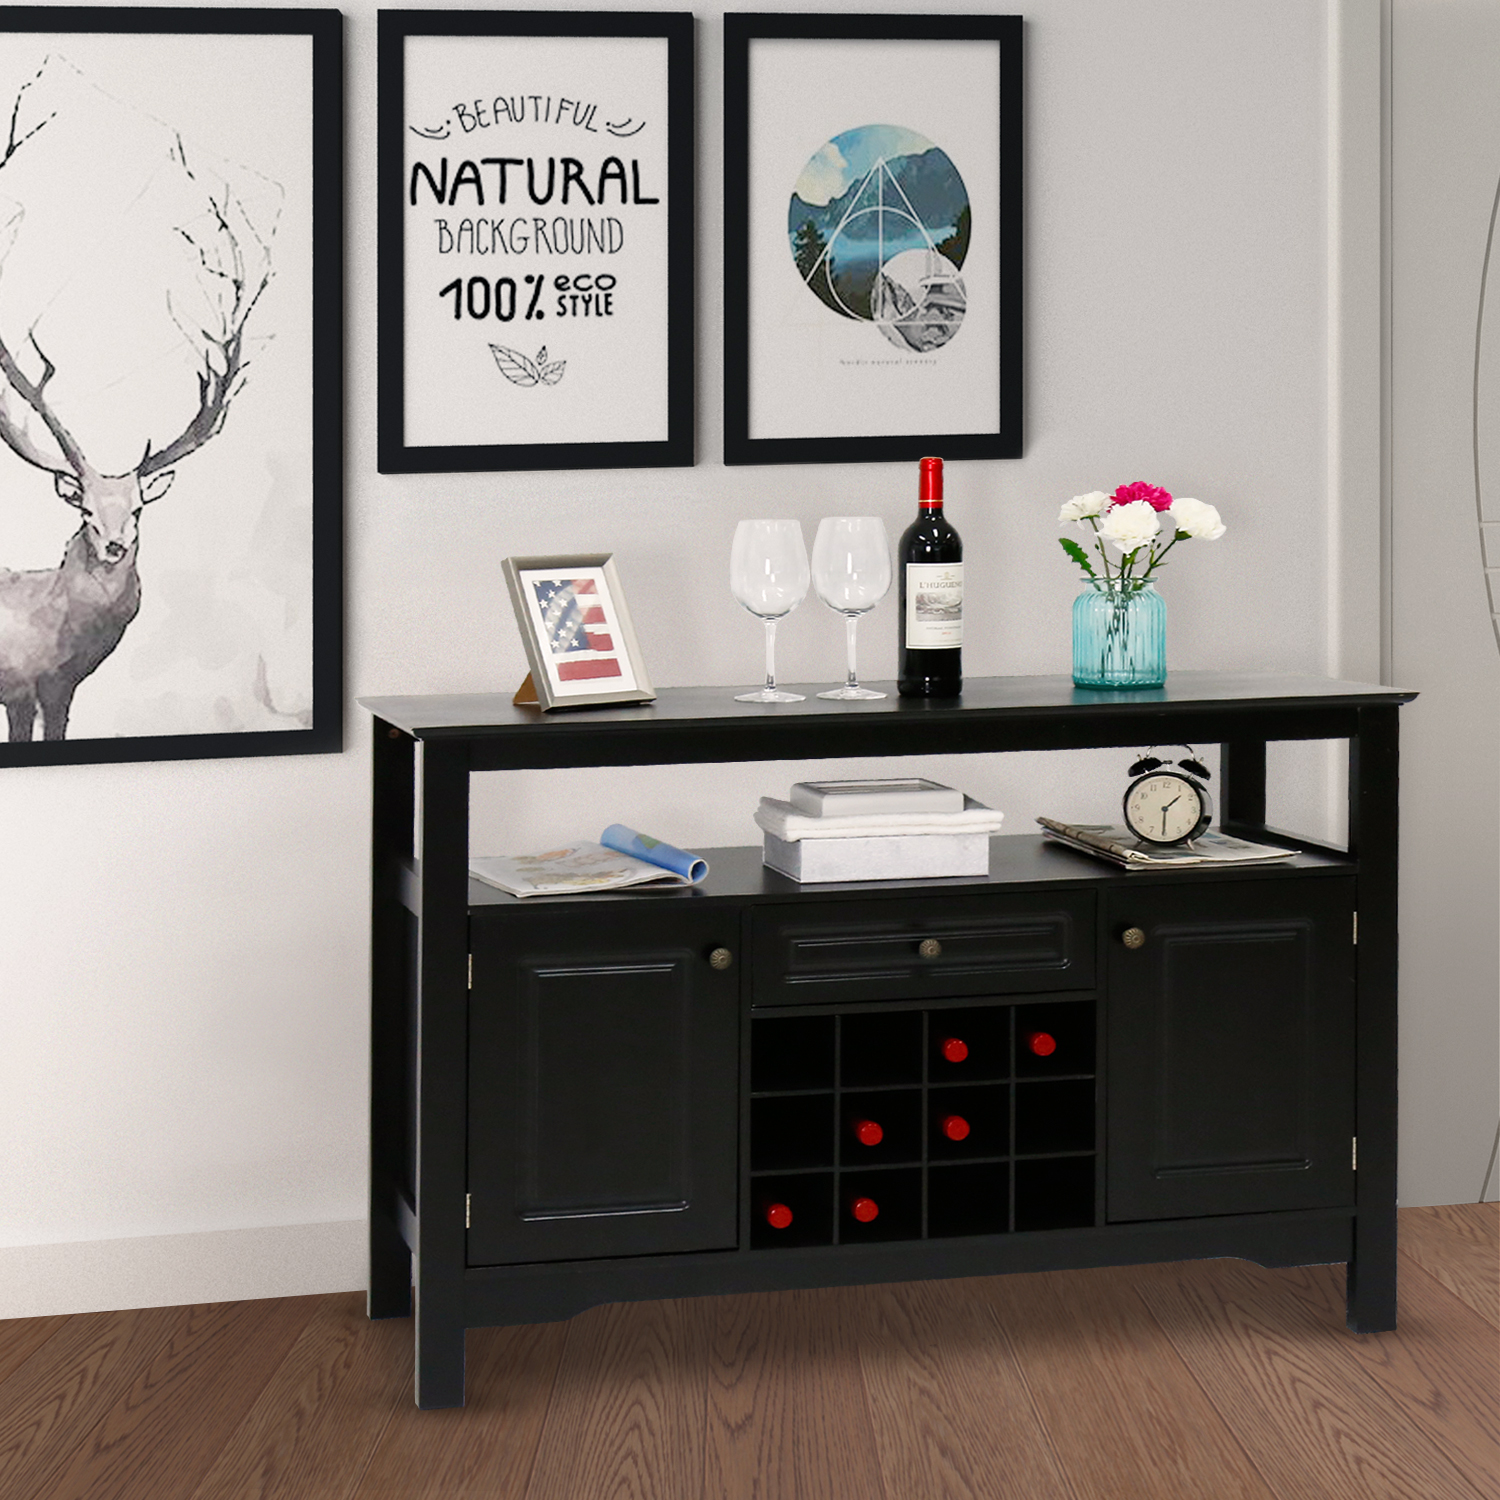 Kinbor Sideboard Cabinet Wine Storage Wine Cabinet Table Big Storage Useful  Buffet Table Kitchen Furniture Black